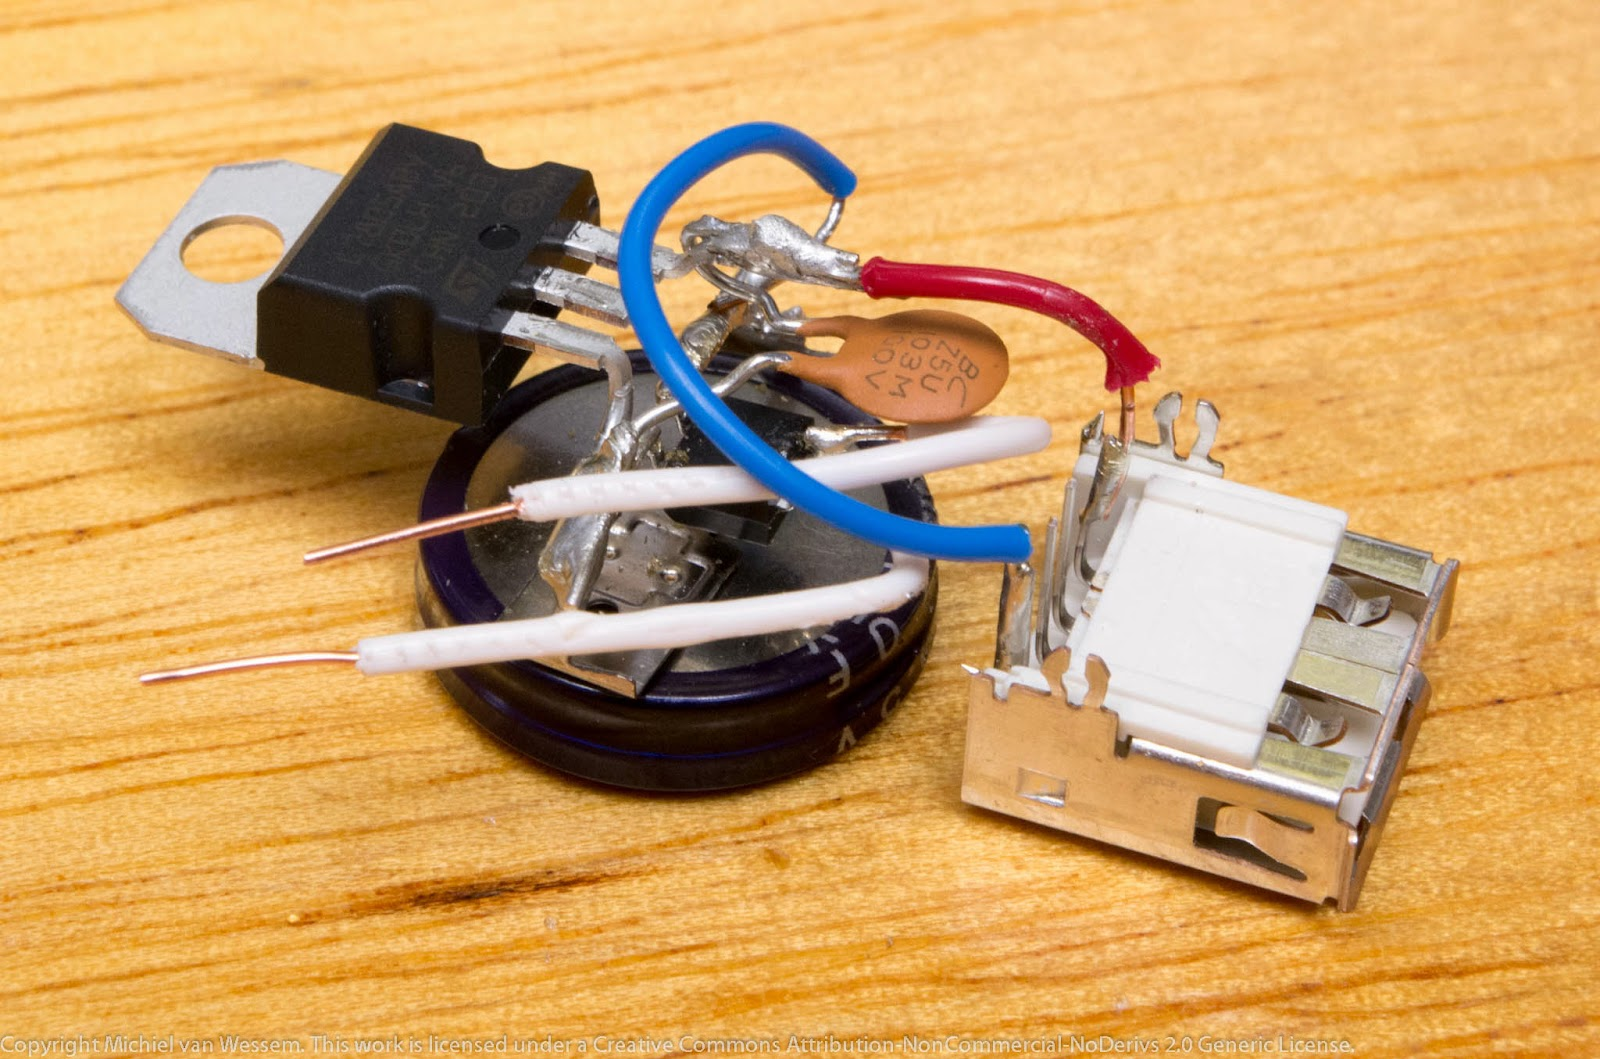 Puny Projects: USB Charger for Bicycle Dynamo or Generator Hub